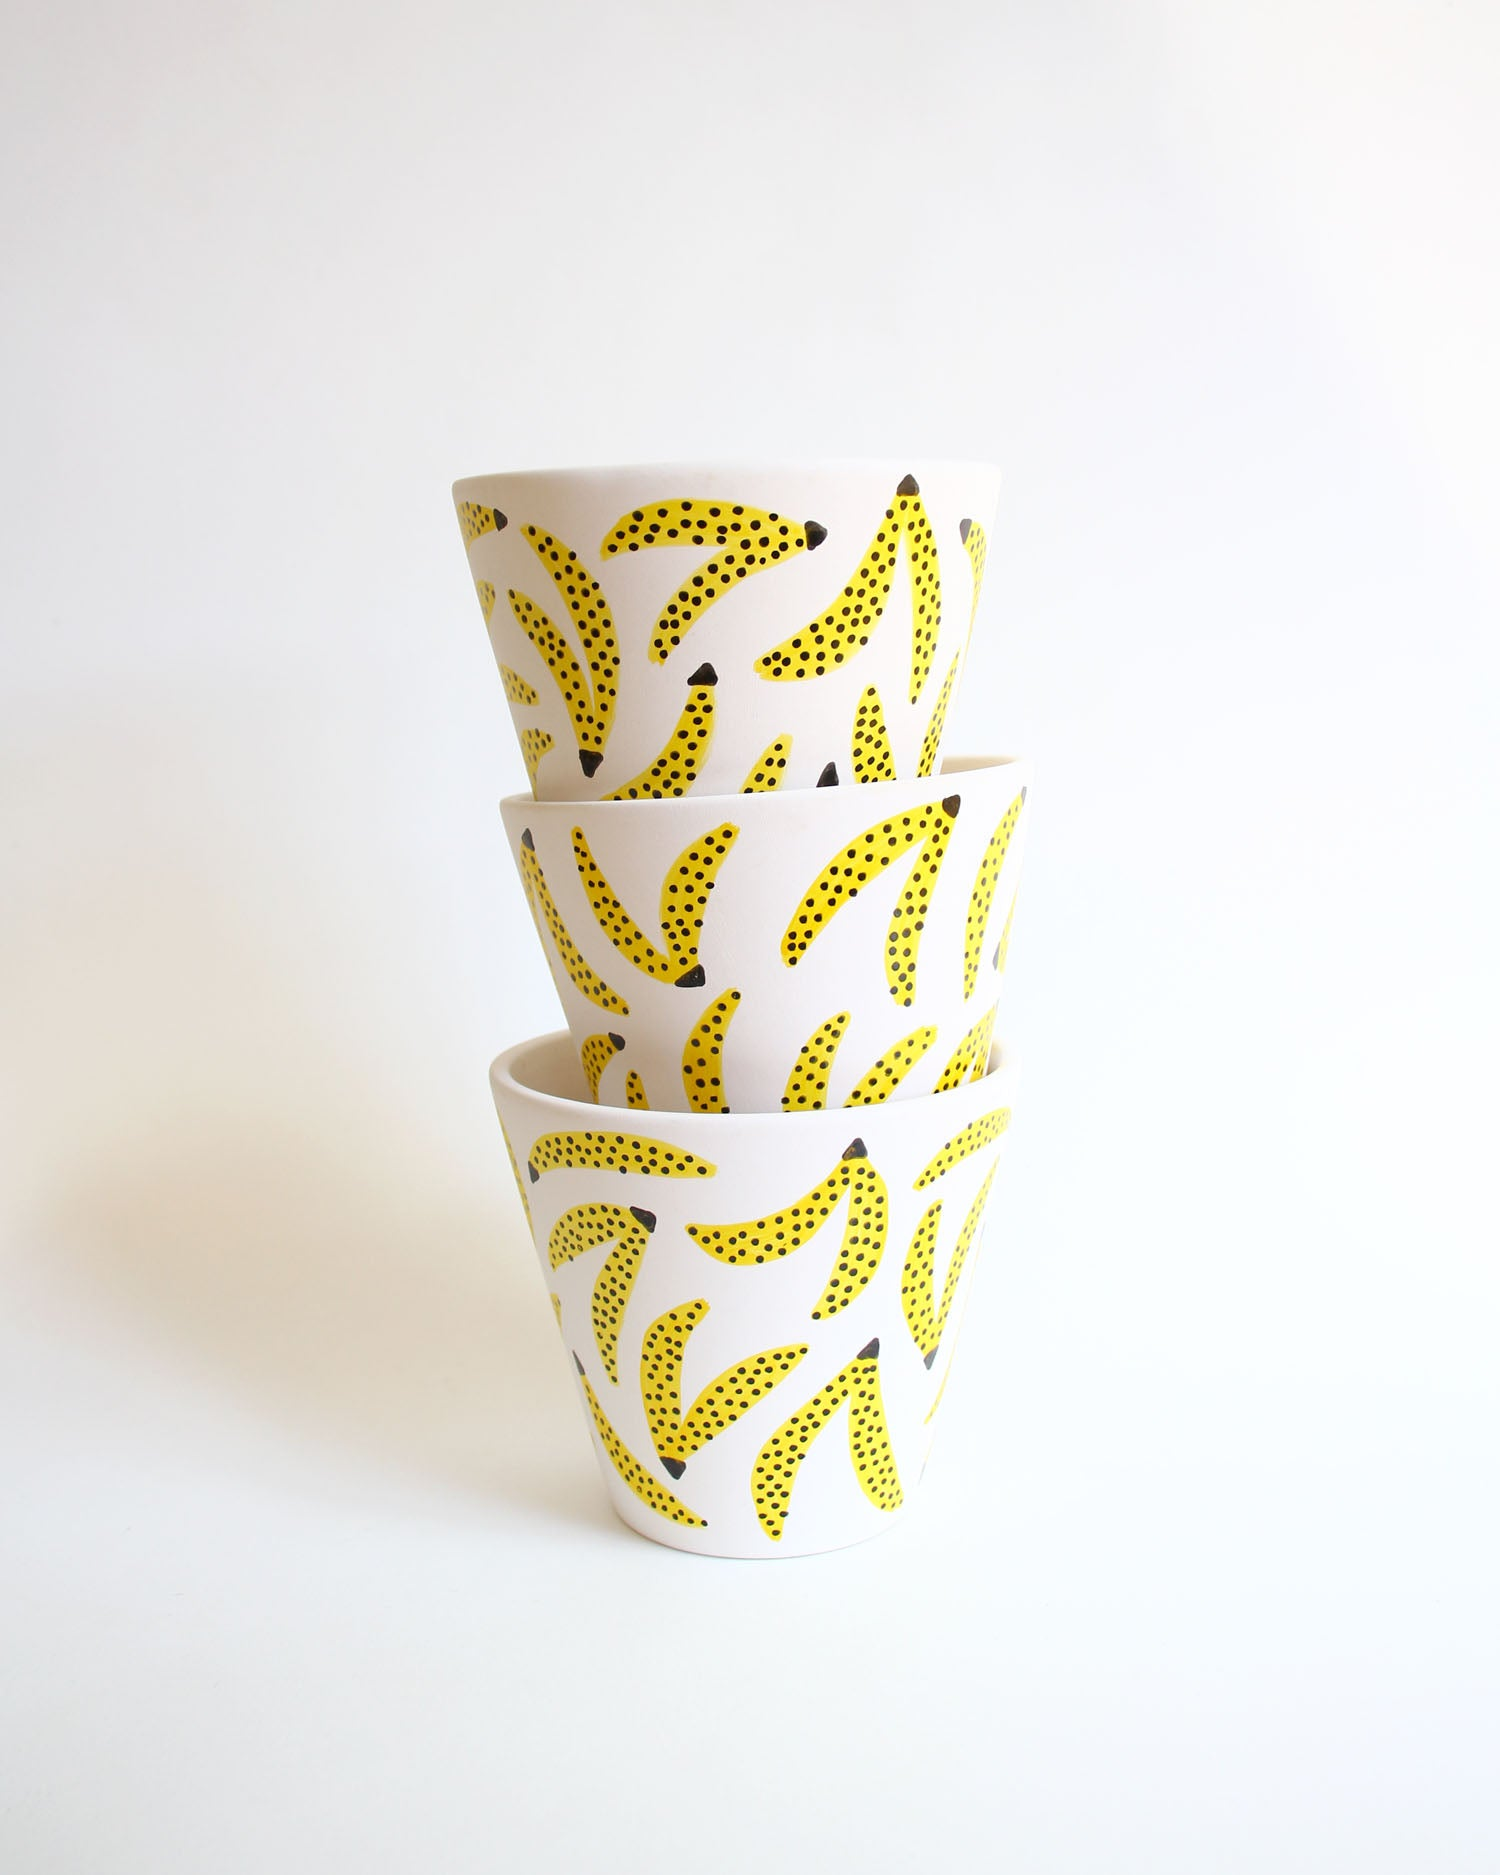 A stack of 3 banana pattern planter pots